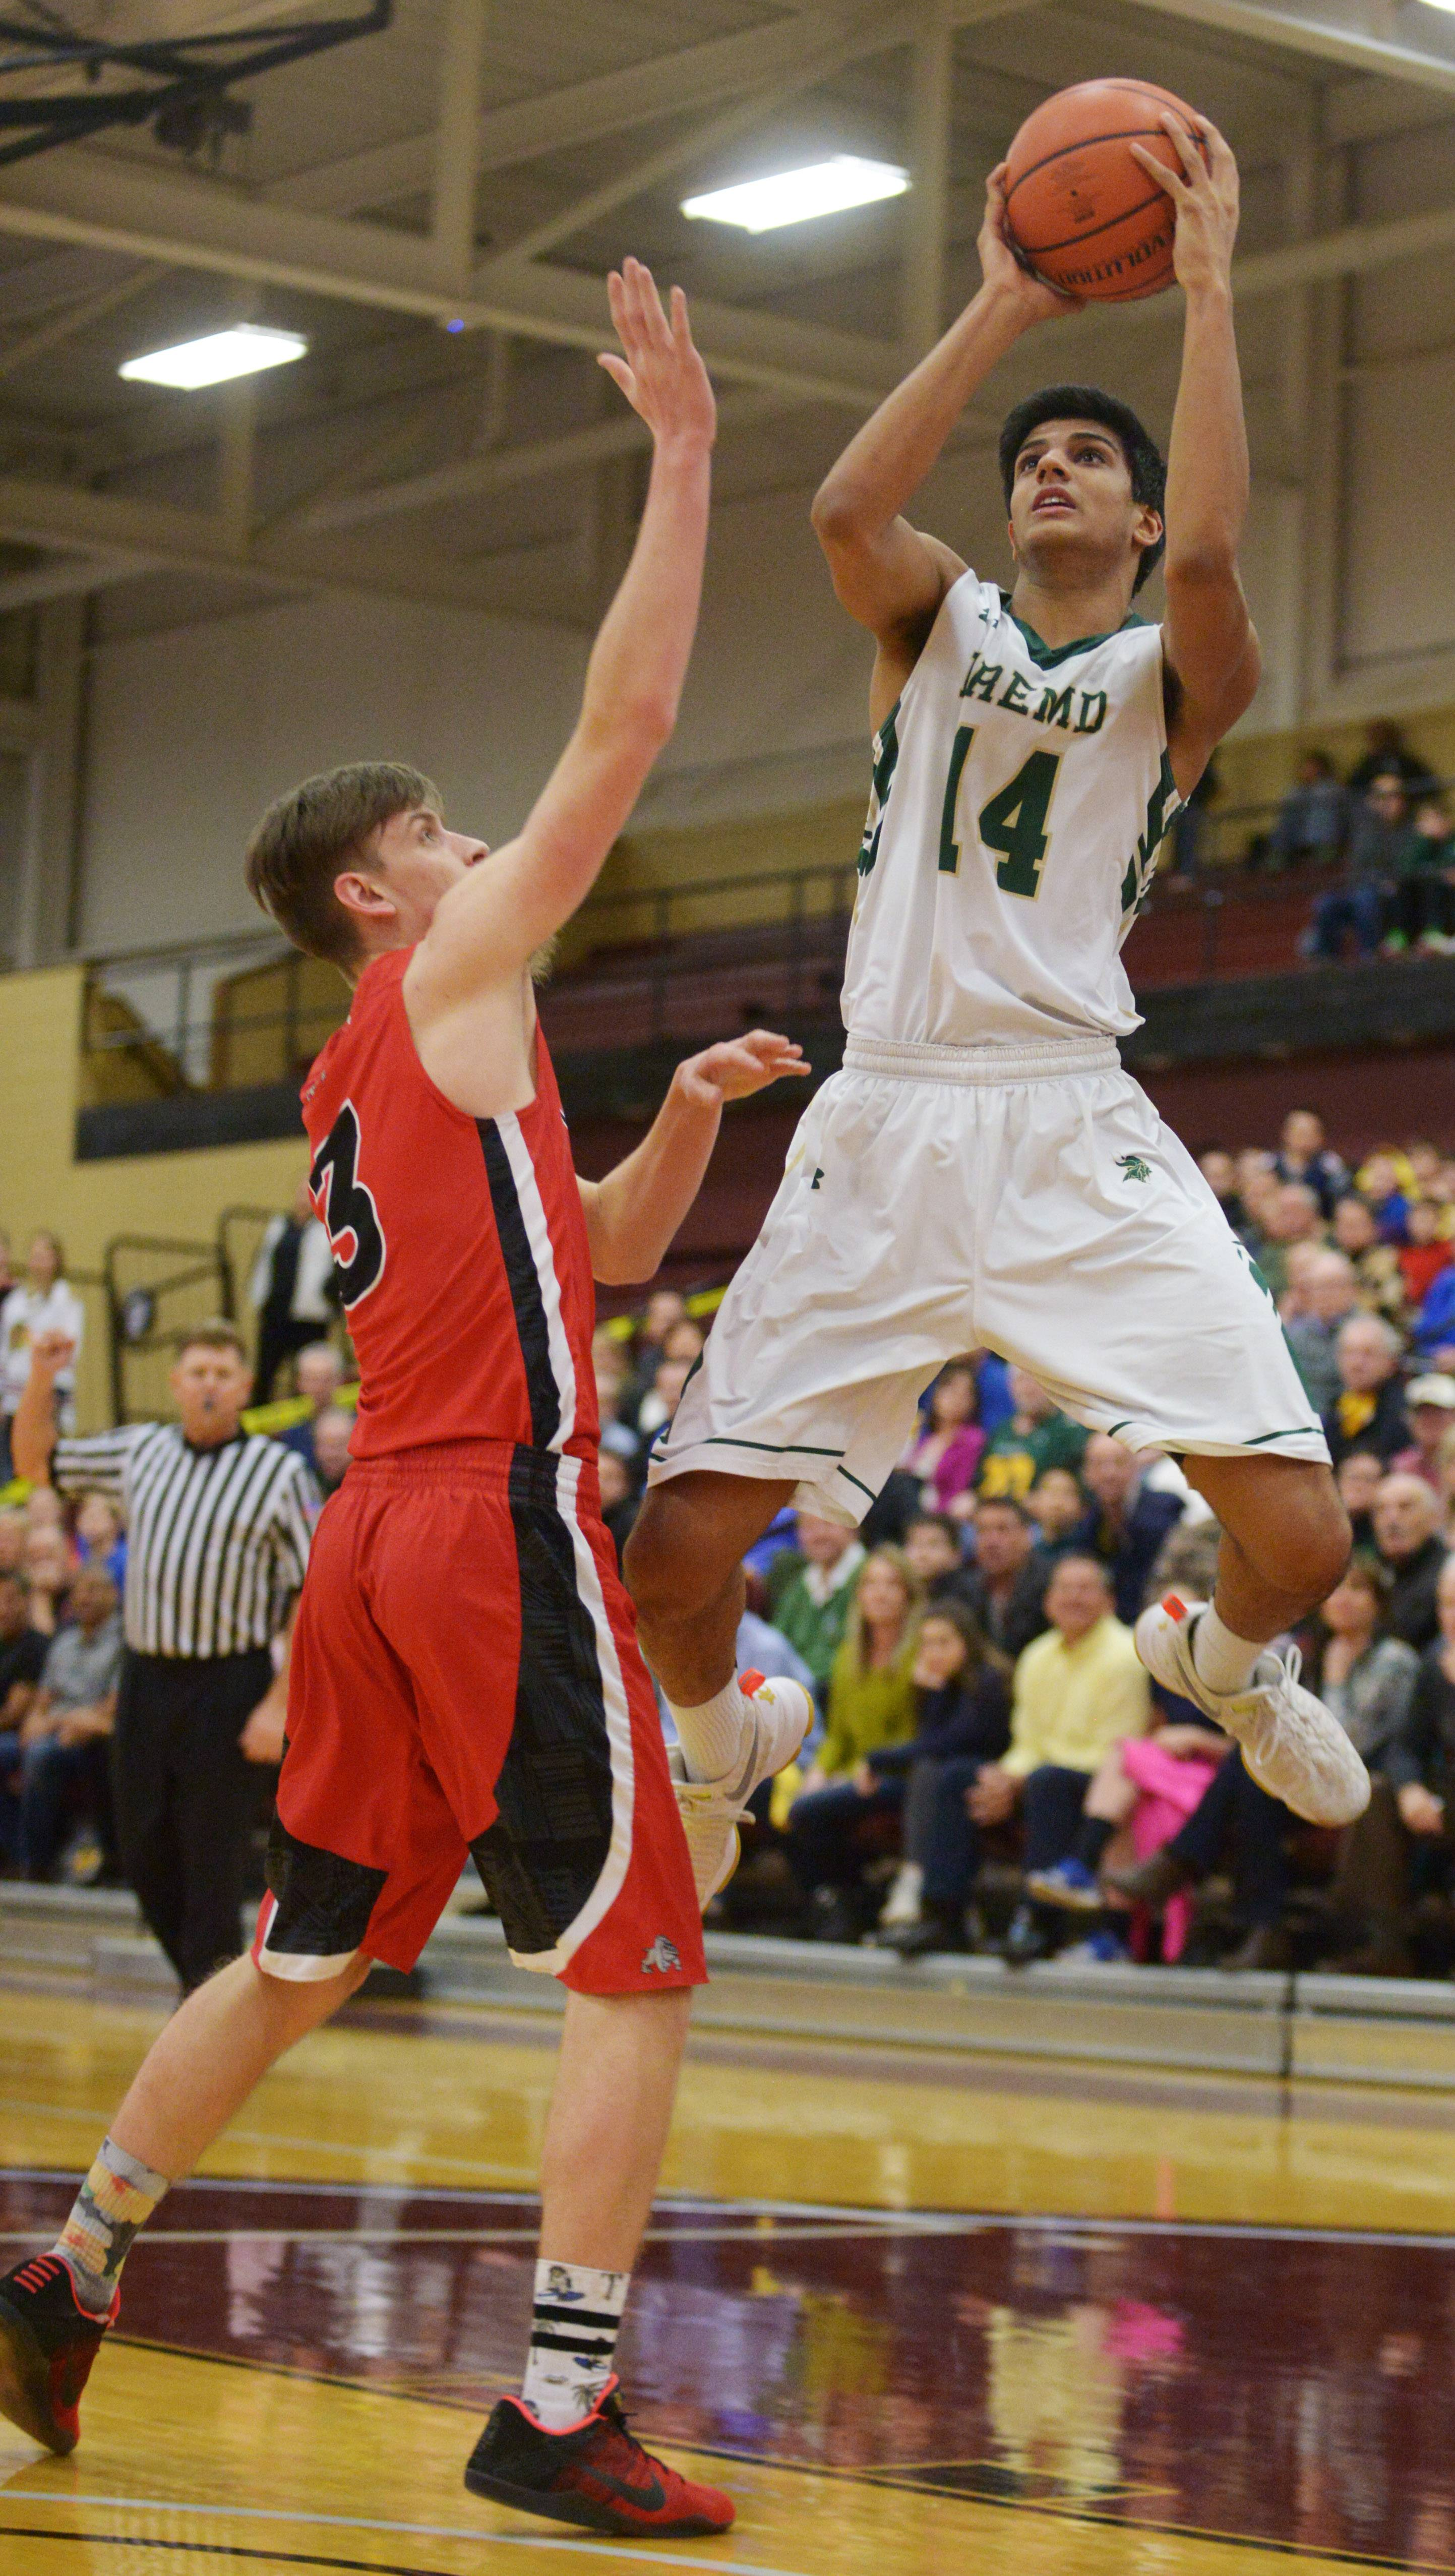 Fremd's Shaan Patel shoots as Grant's Mike Huff defends during the Elk Grove sectional semifinal played at the Robert Morris University gymnasium in Arlington Heights on Tuesday.